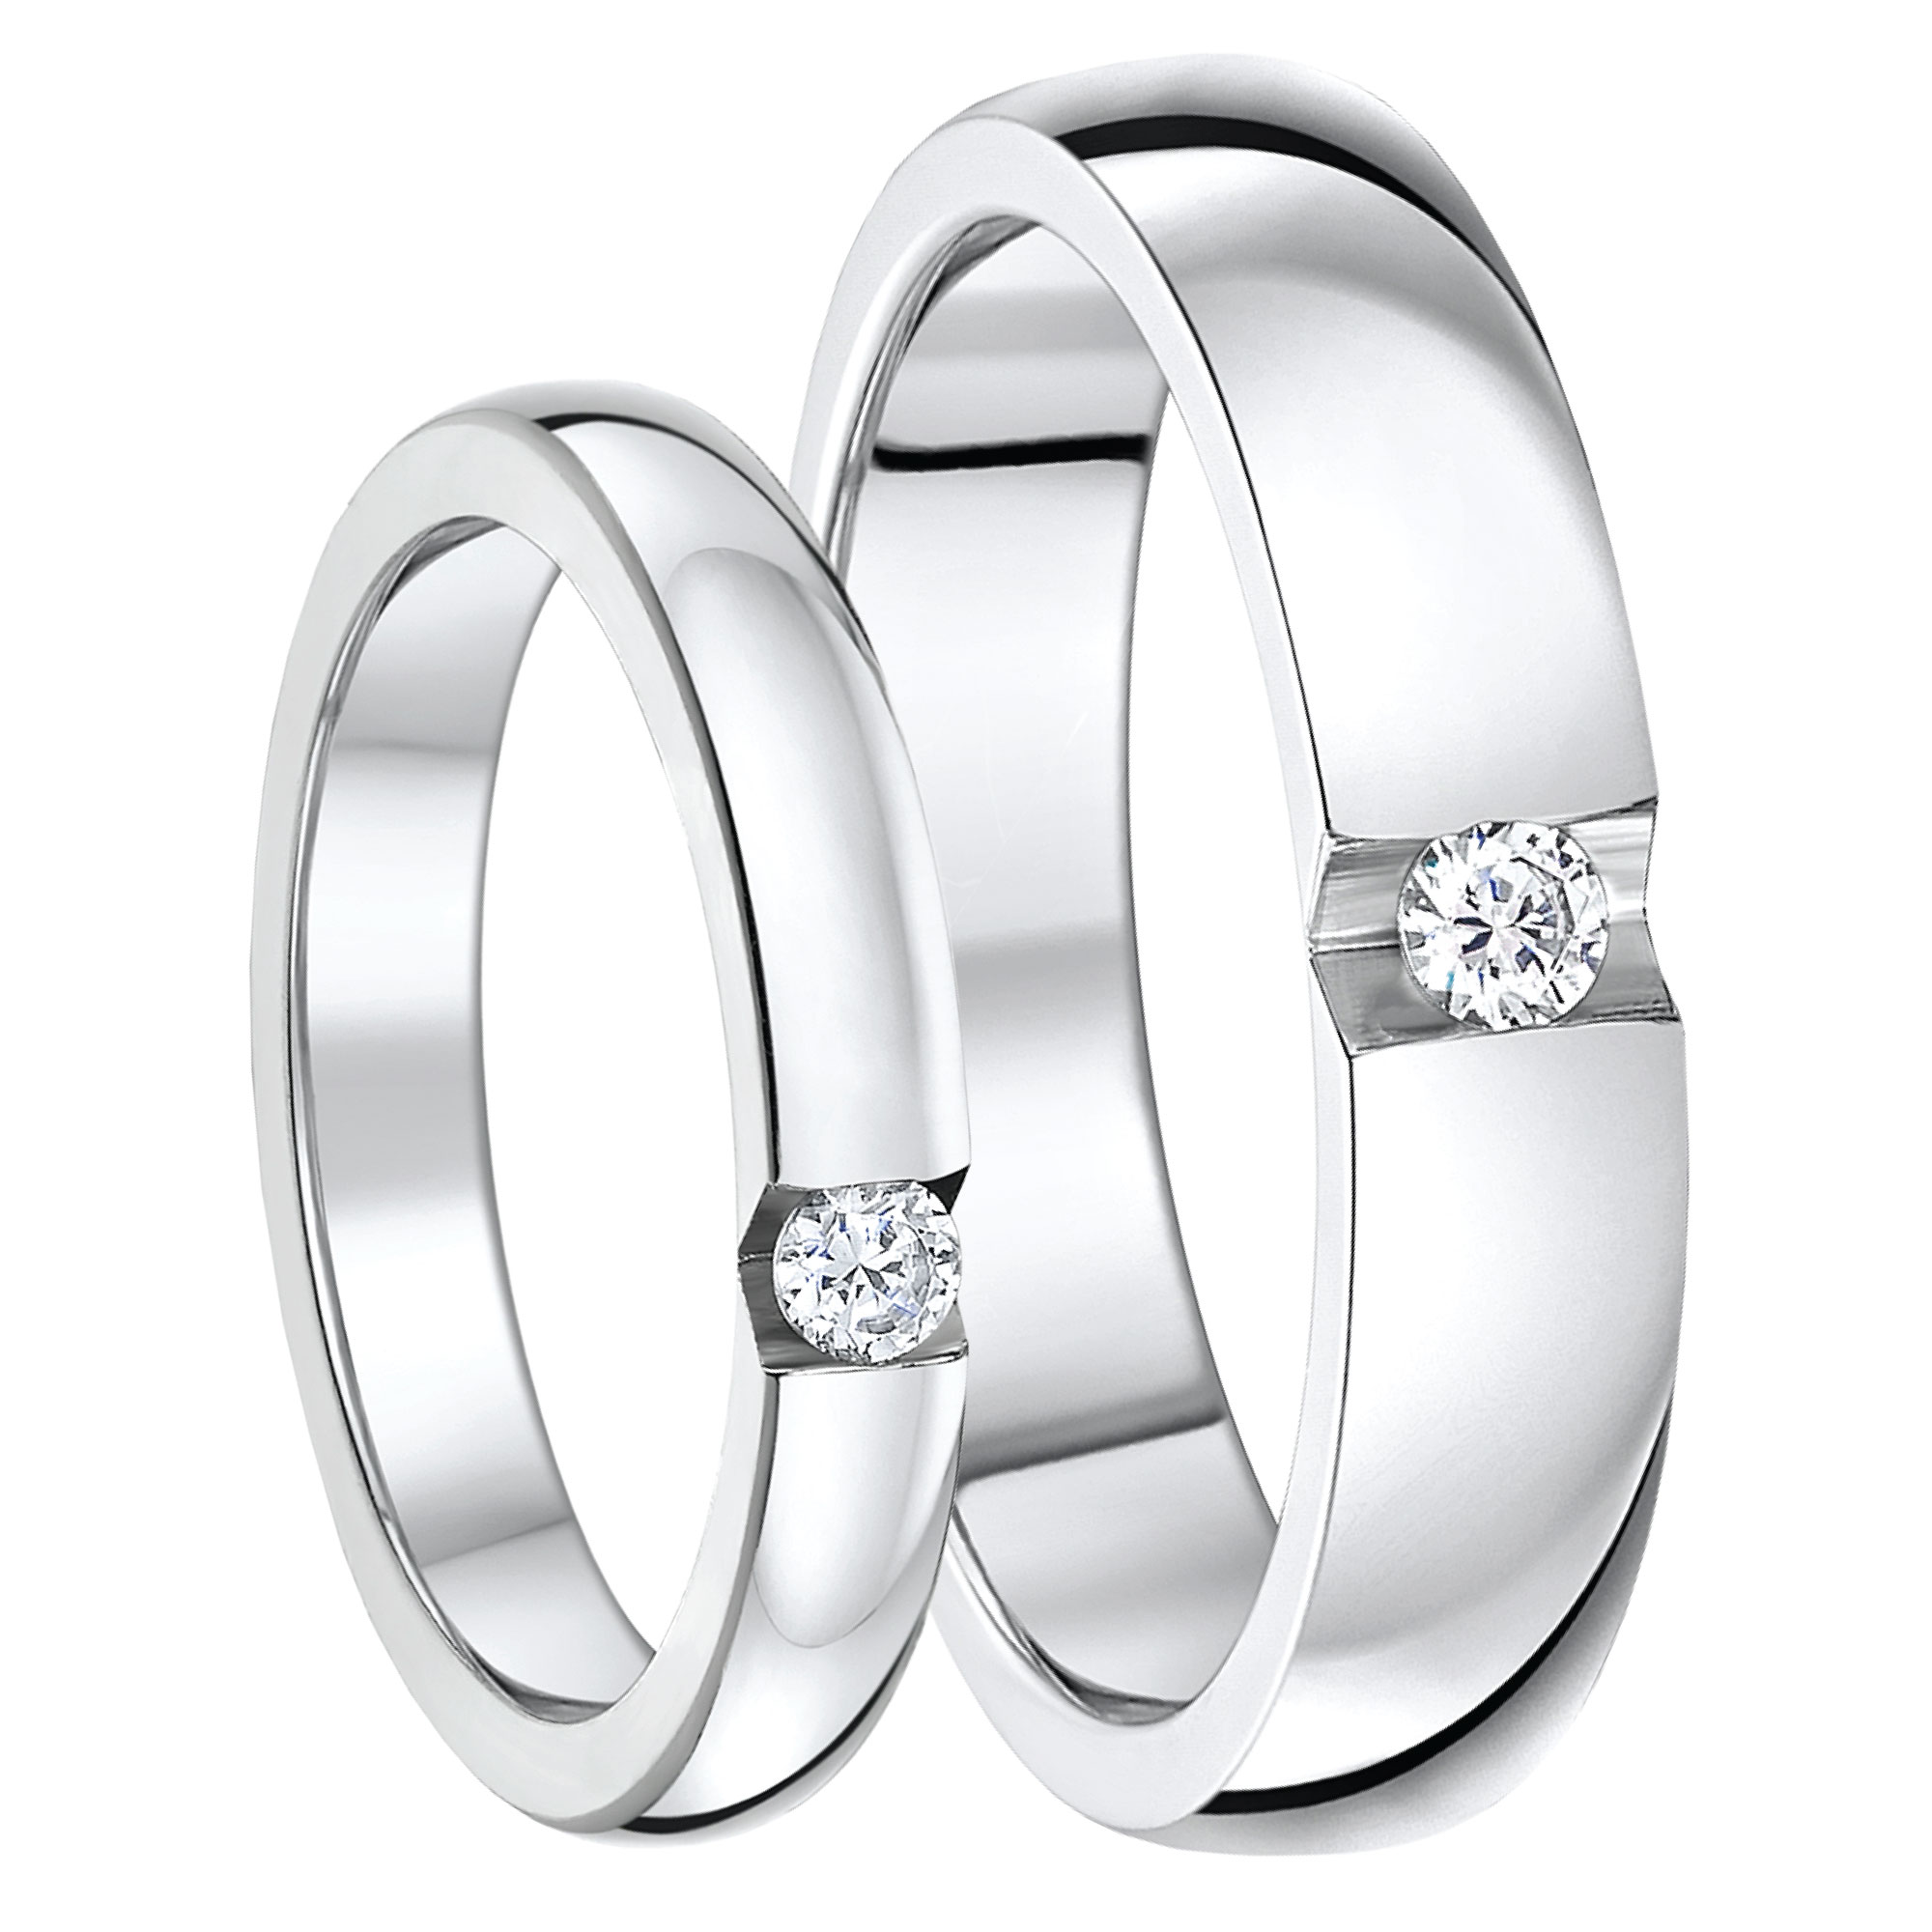 ma loading engagement rings set stainless ring is image black titanium hers wedding his steel pc band itm